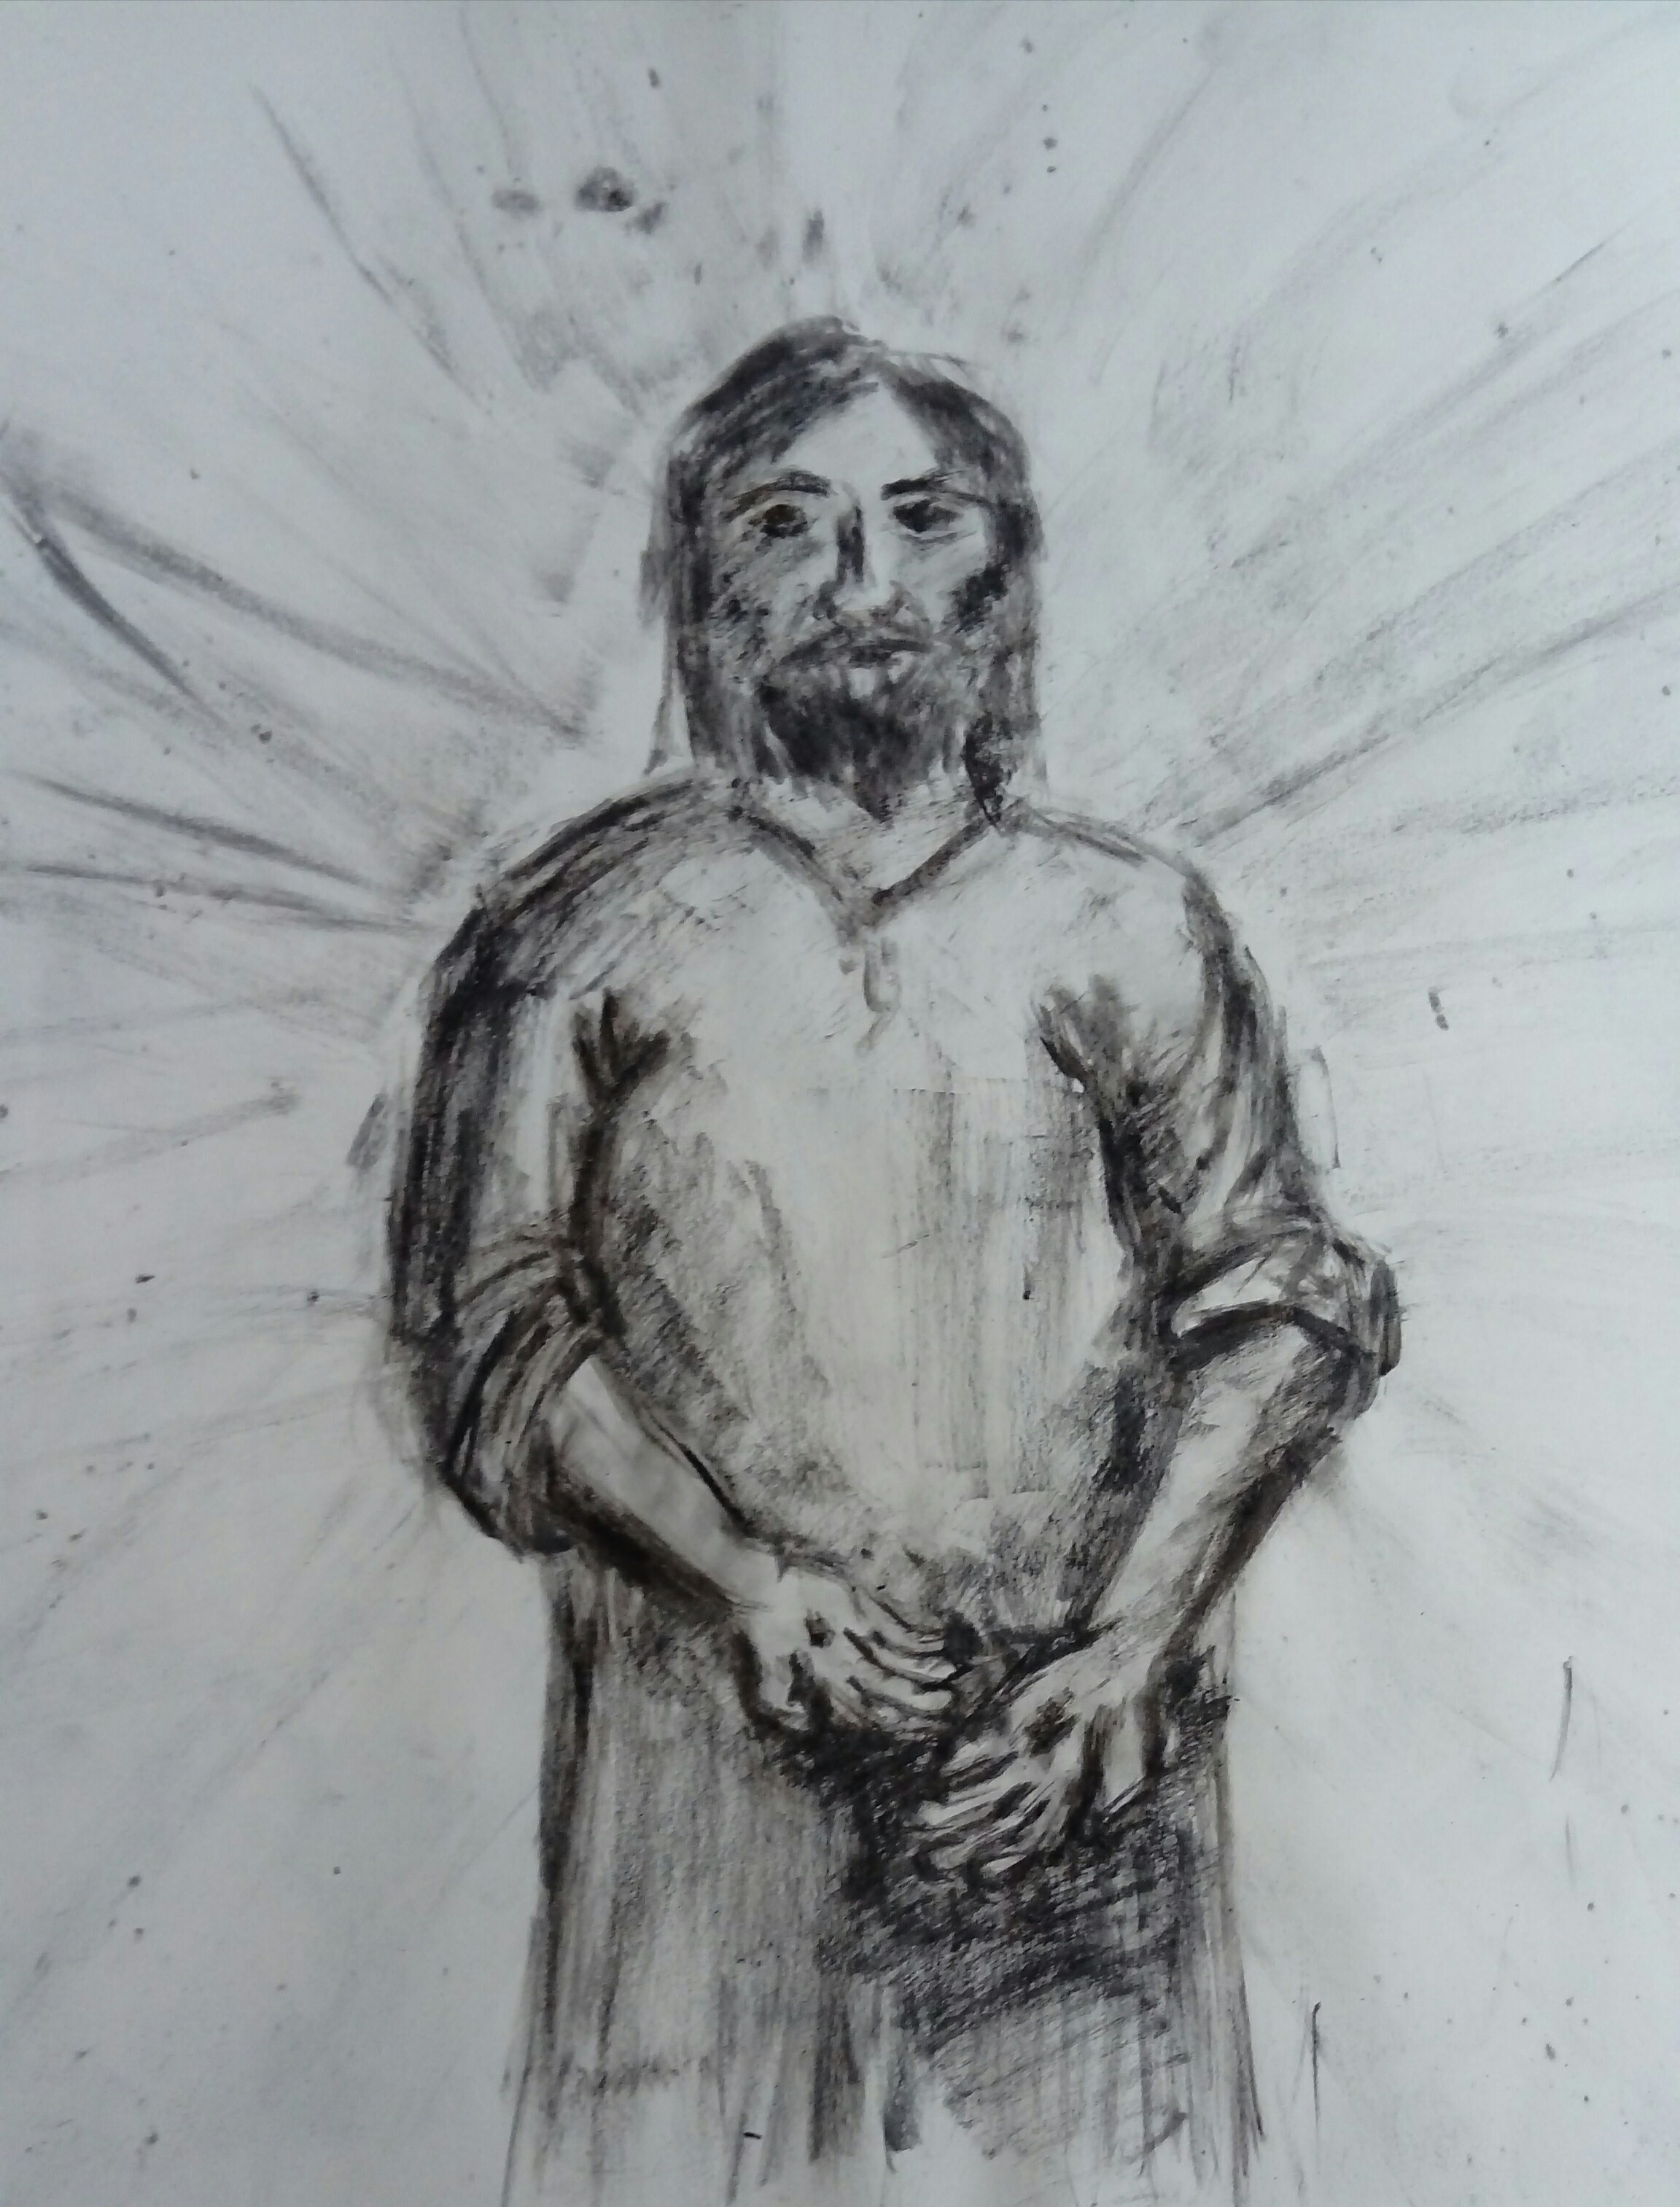 Jesus showing the disciples his wounds and saying 'Peace be with you' - drawn in charcoal